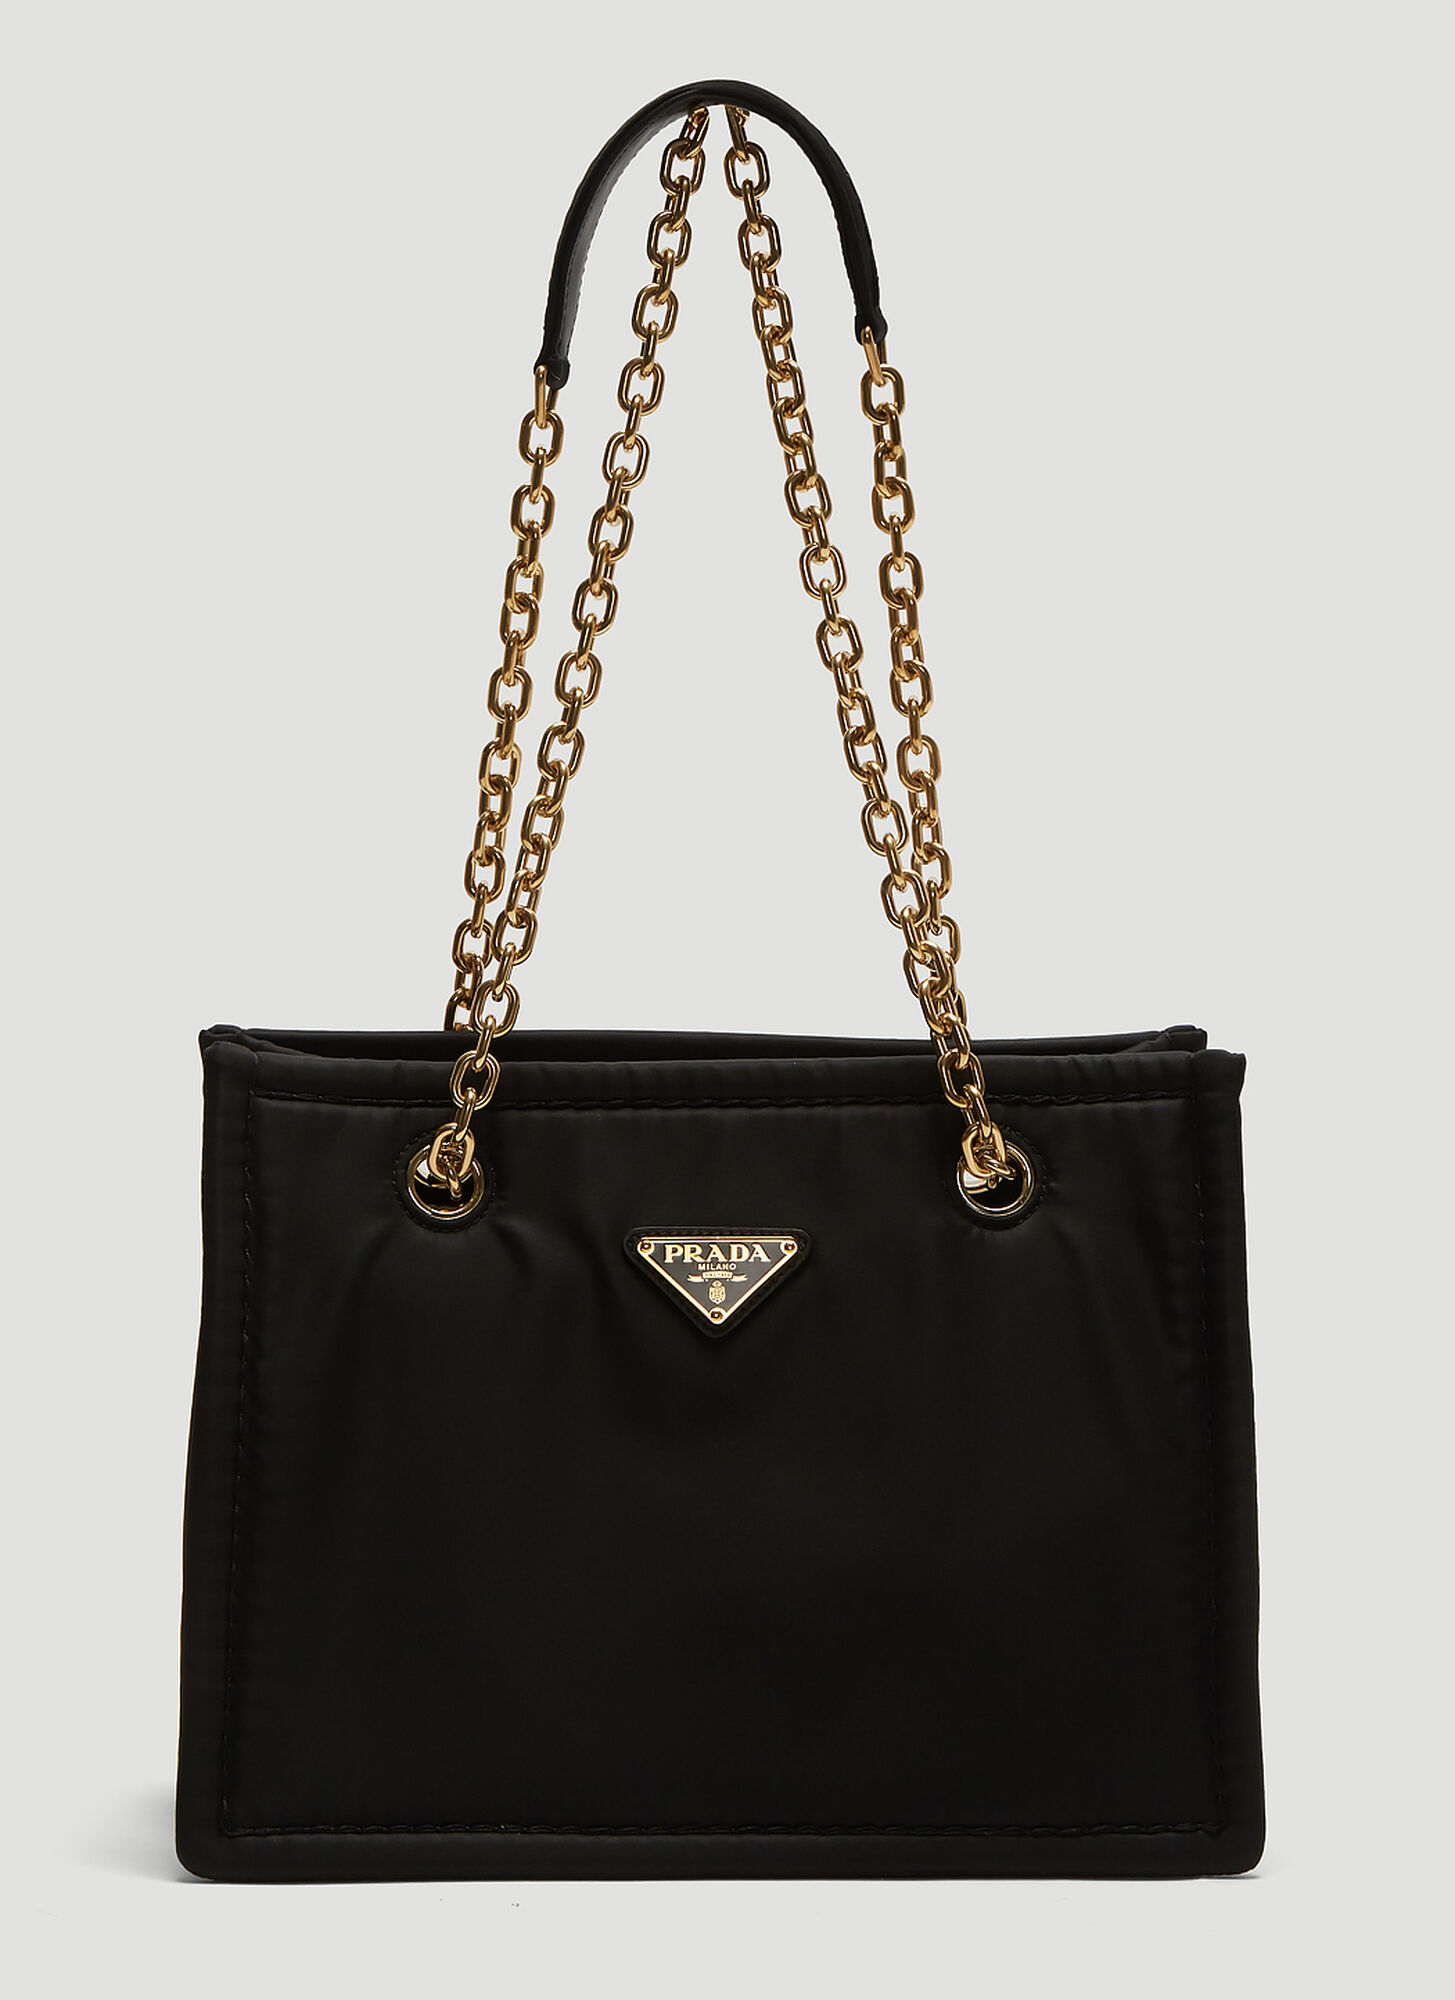 Prada Nylon Chain Bag in Black